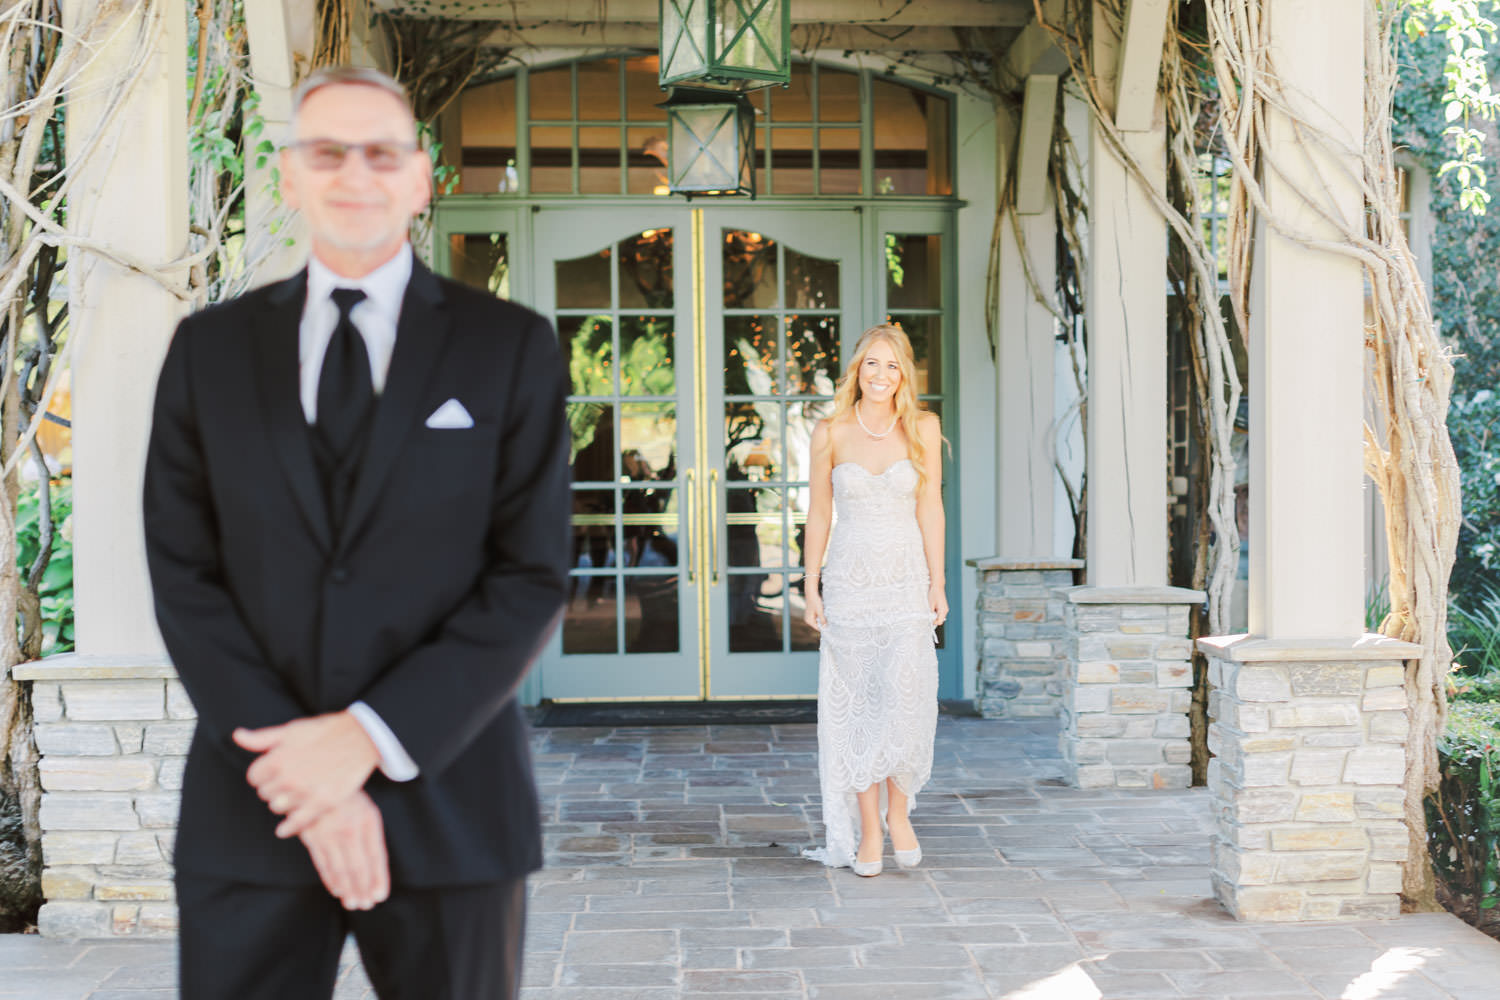 Bride during father daughter first look wearing sweetheart neckline Galia Lahav beaded gown, Del Mar Country Club Wedding by Cavin Elizabeth Photography